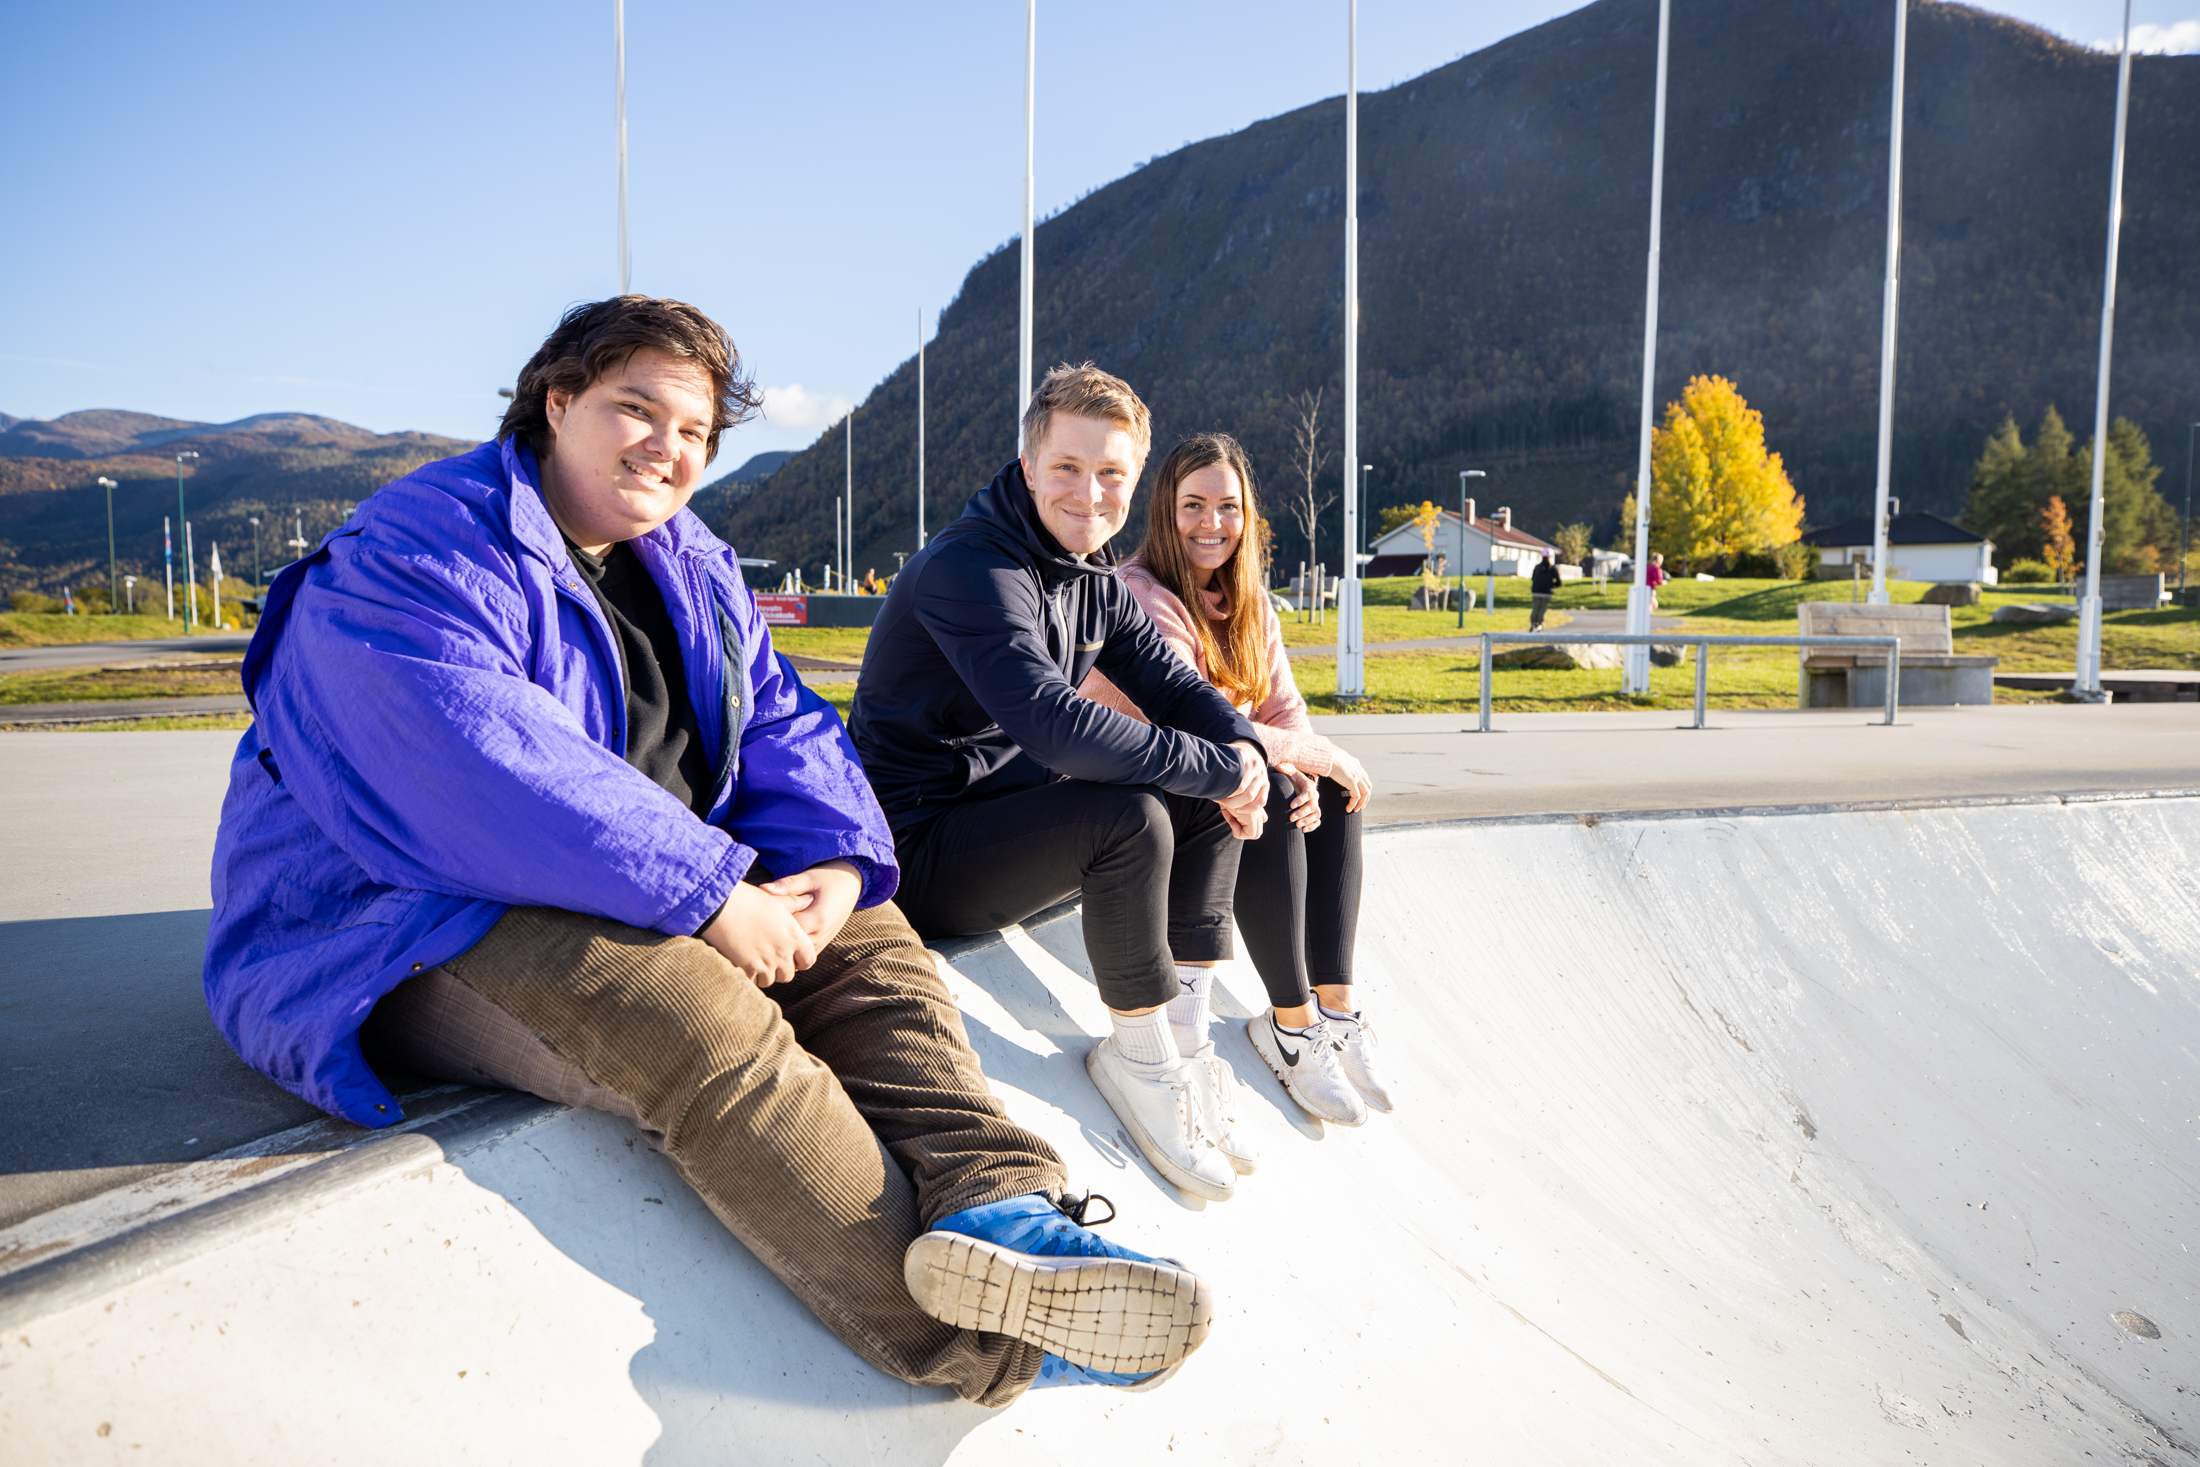 studenter skatepark